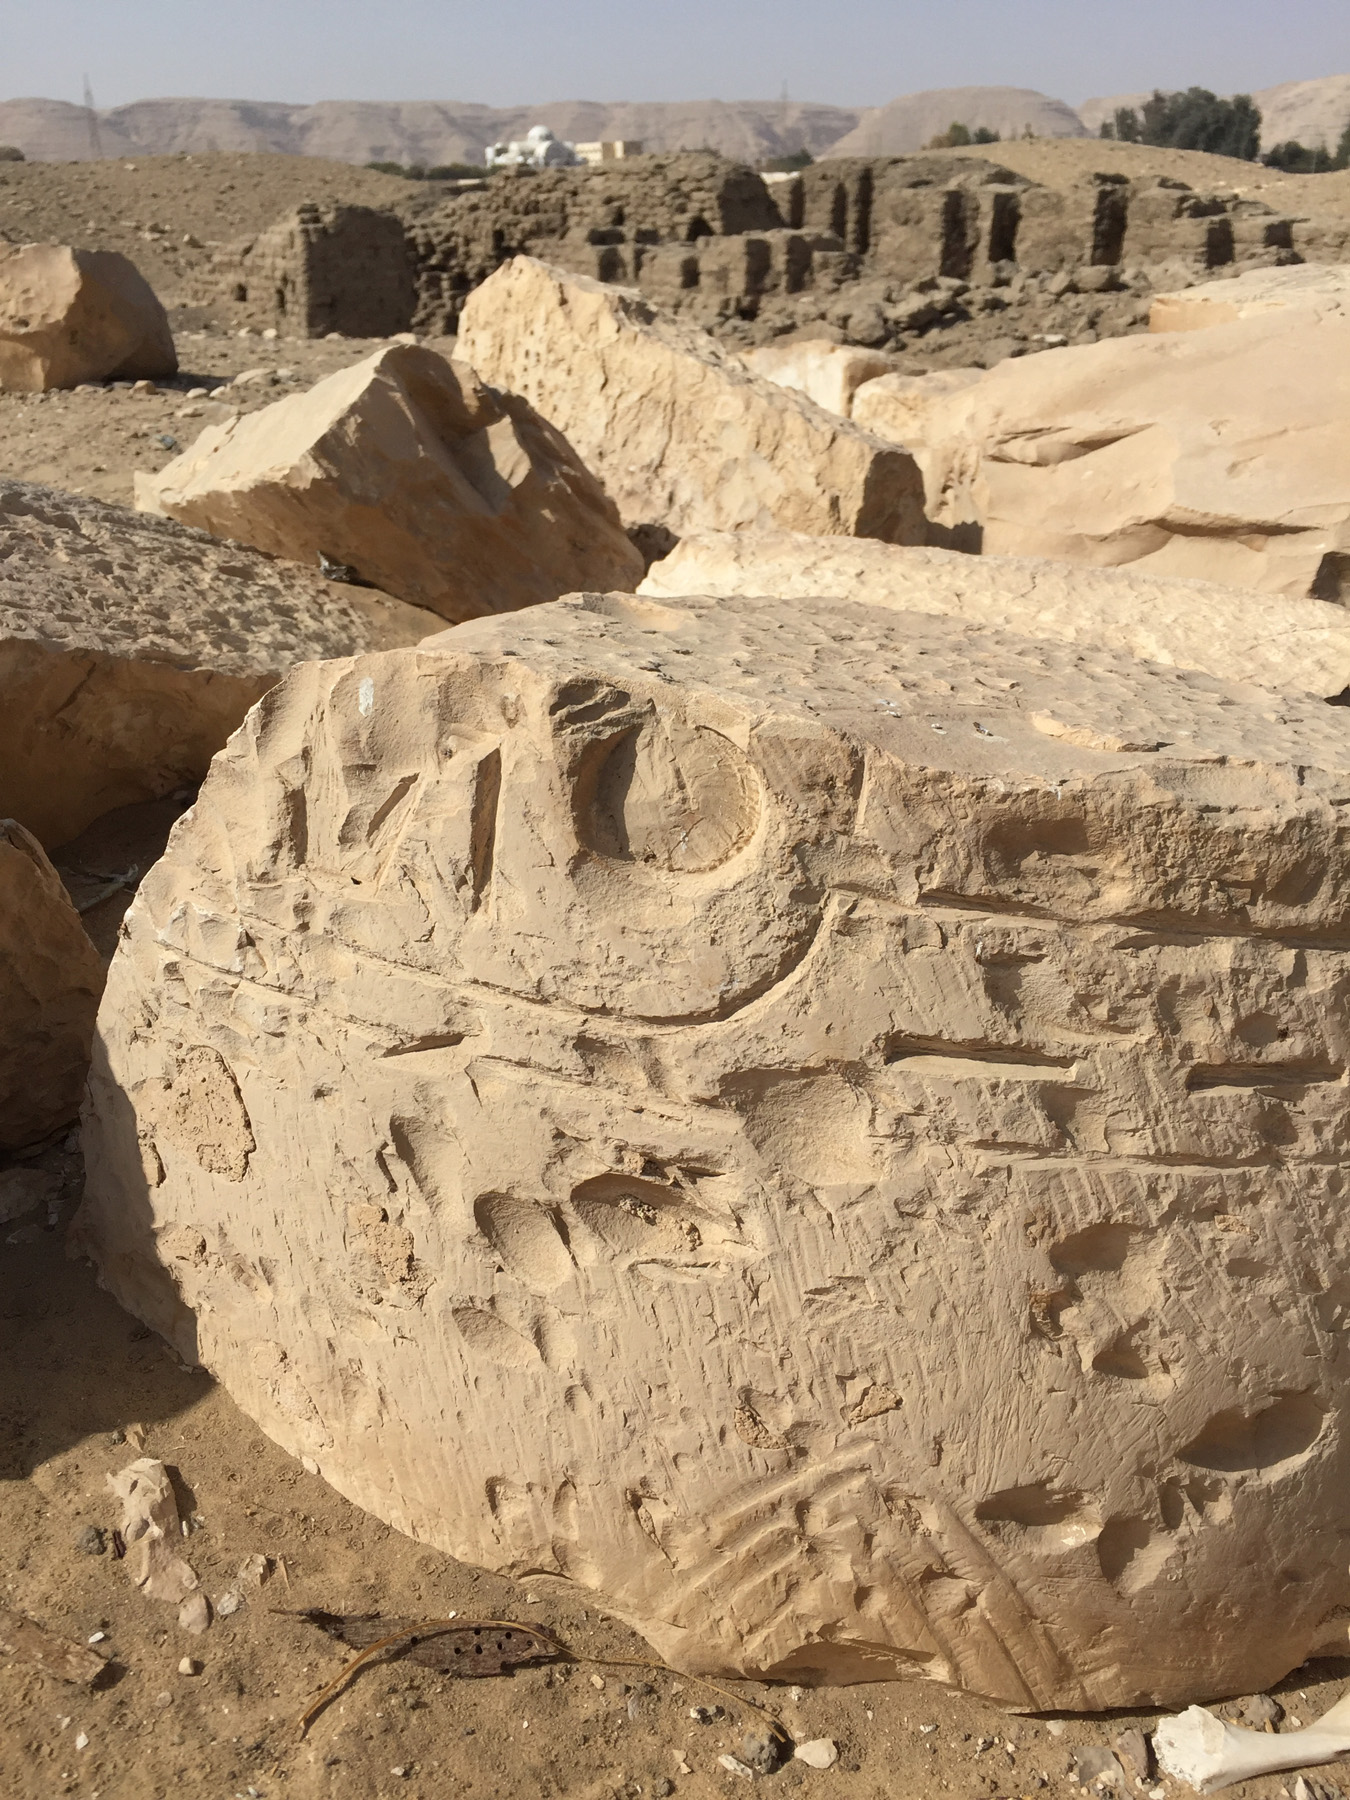 ANCSP19 © North Abydos Expedition.jpg